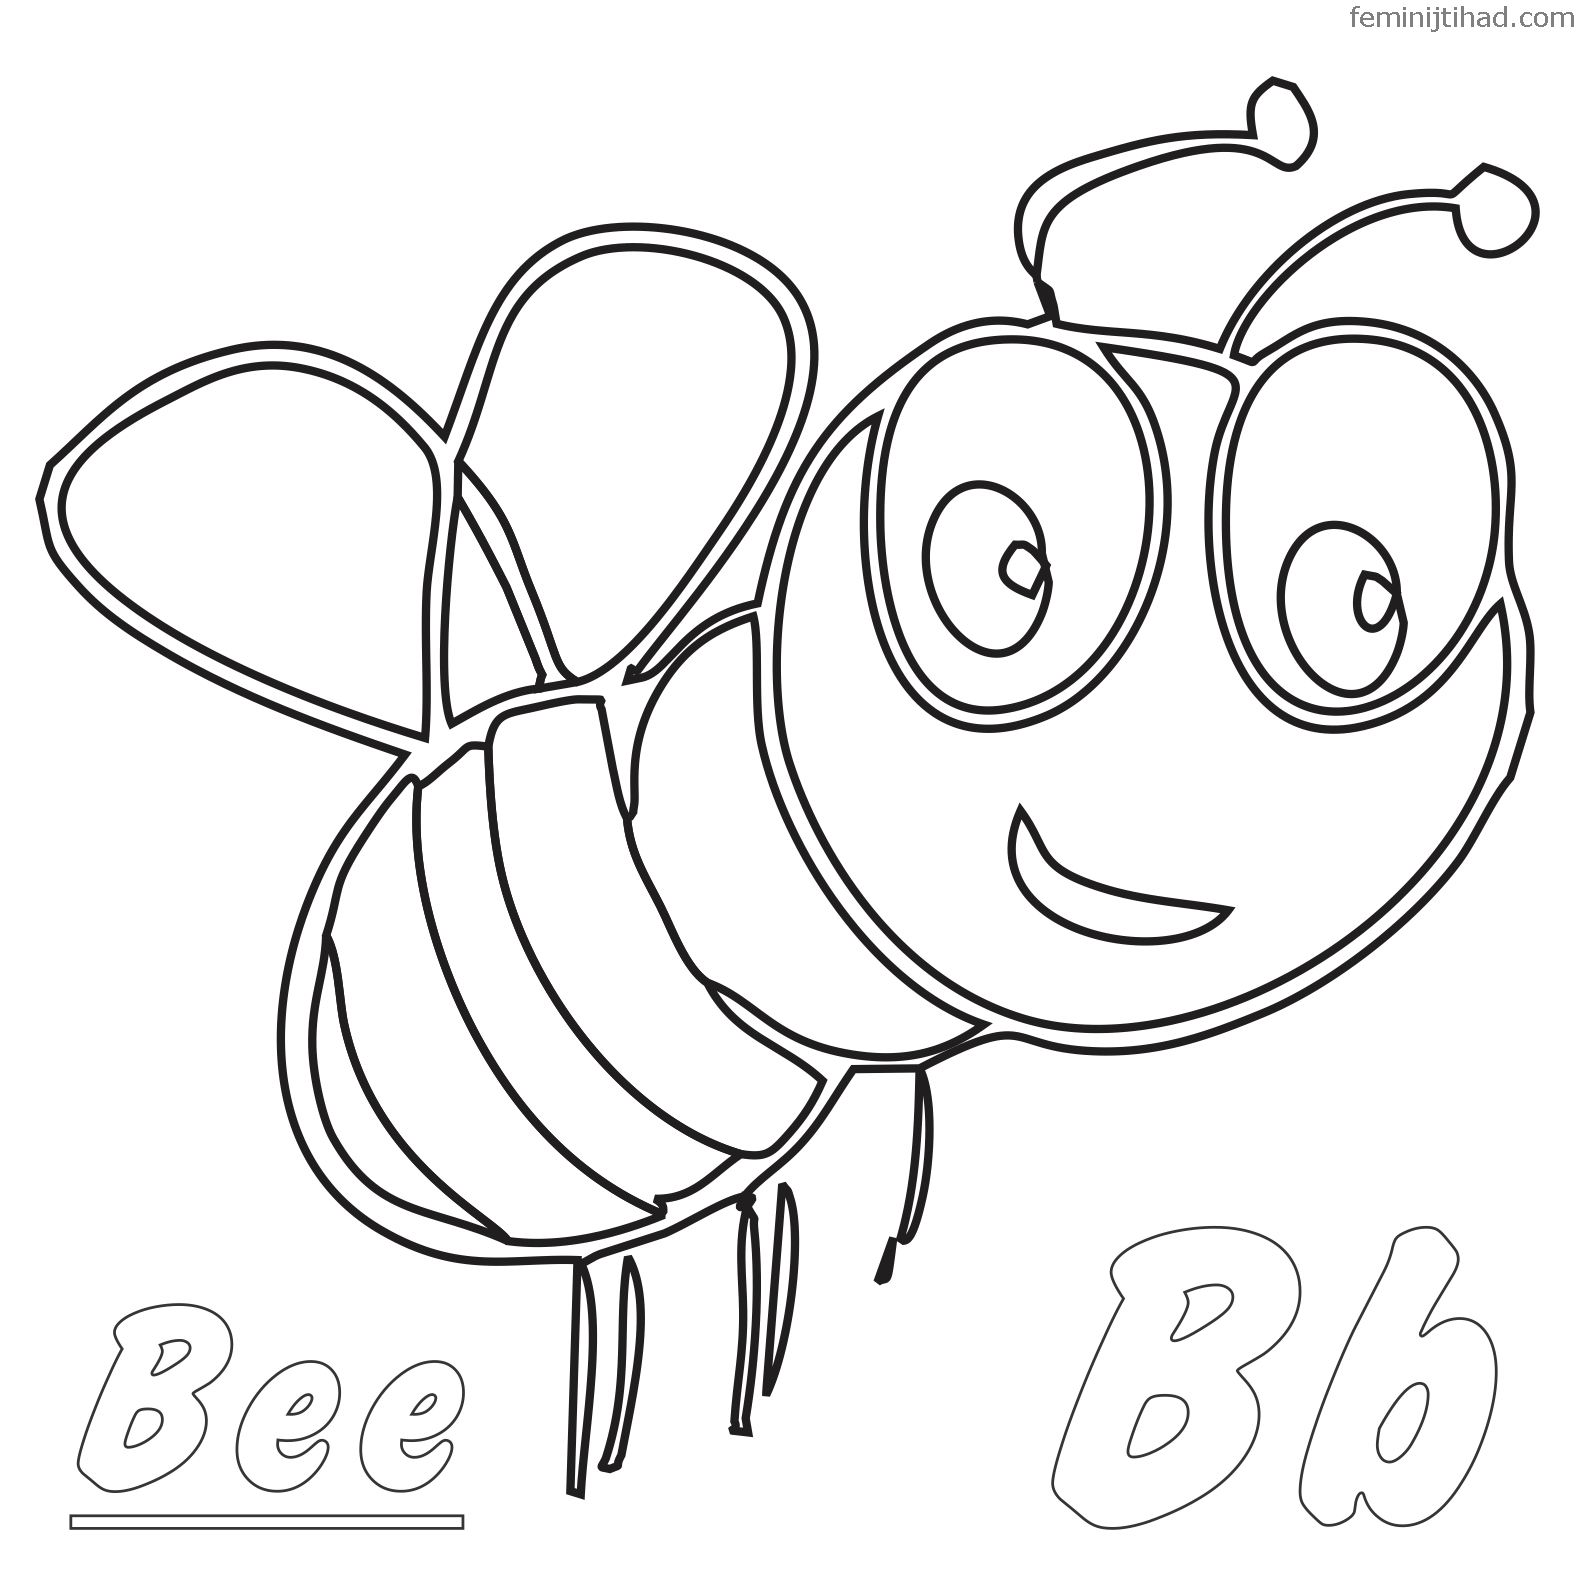 cartoon bumble bee coloring pages free printable bumble bee coloring pages for kids coloring cartoon bee pages bumble